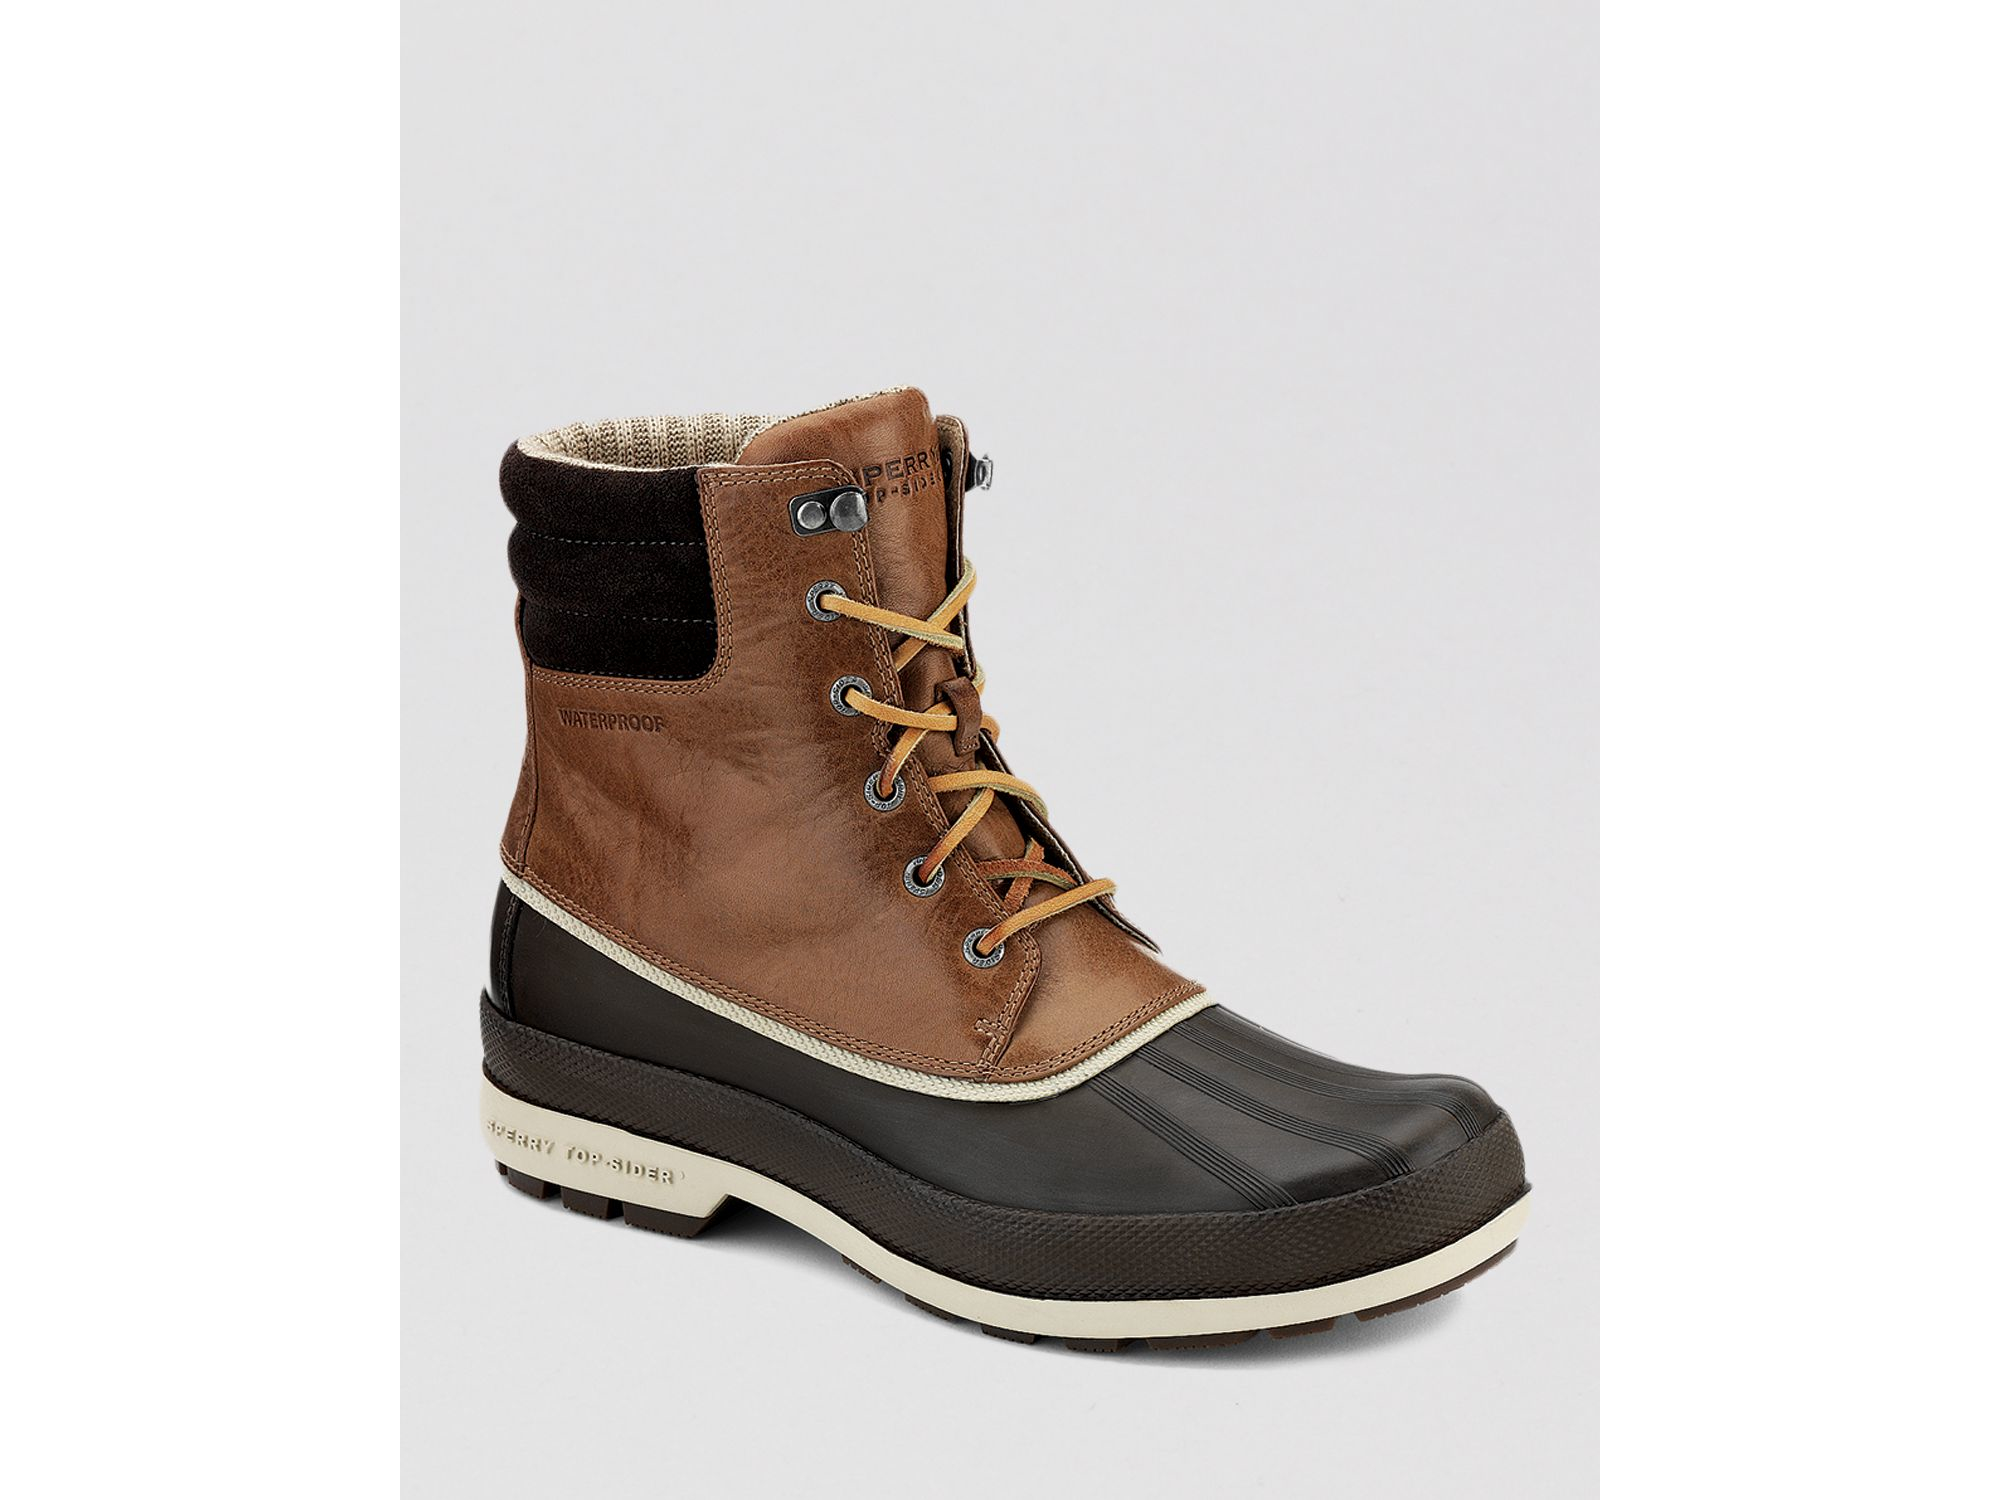 sperry top sider waterproof cold bay boots in brown for